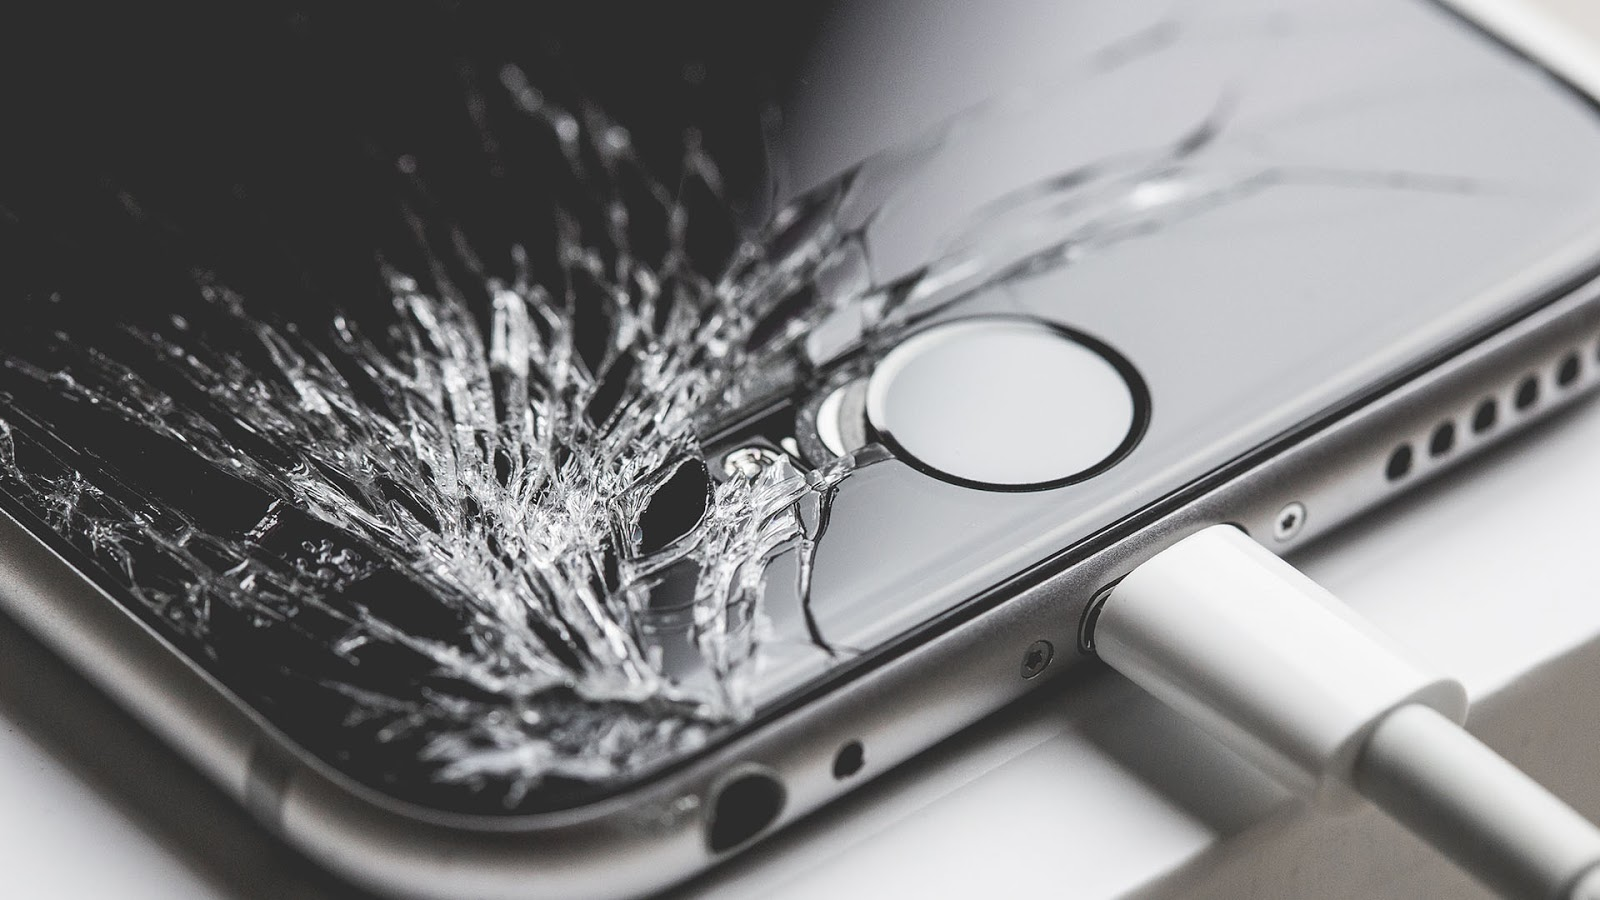 Fast and inexpensive iPhone repairs